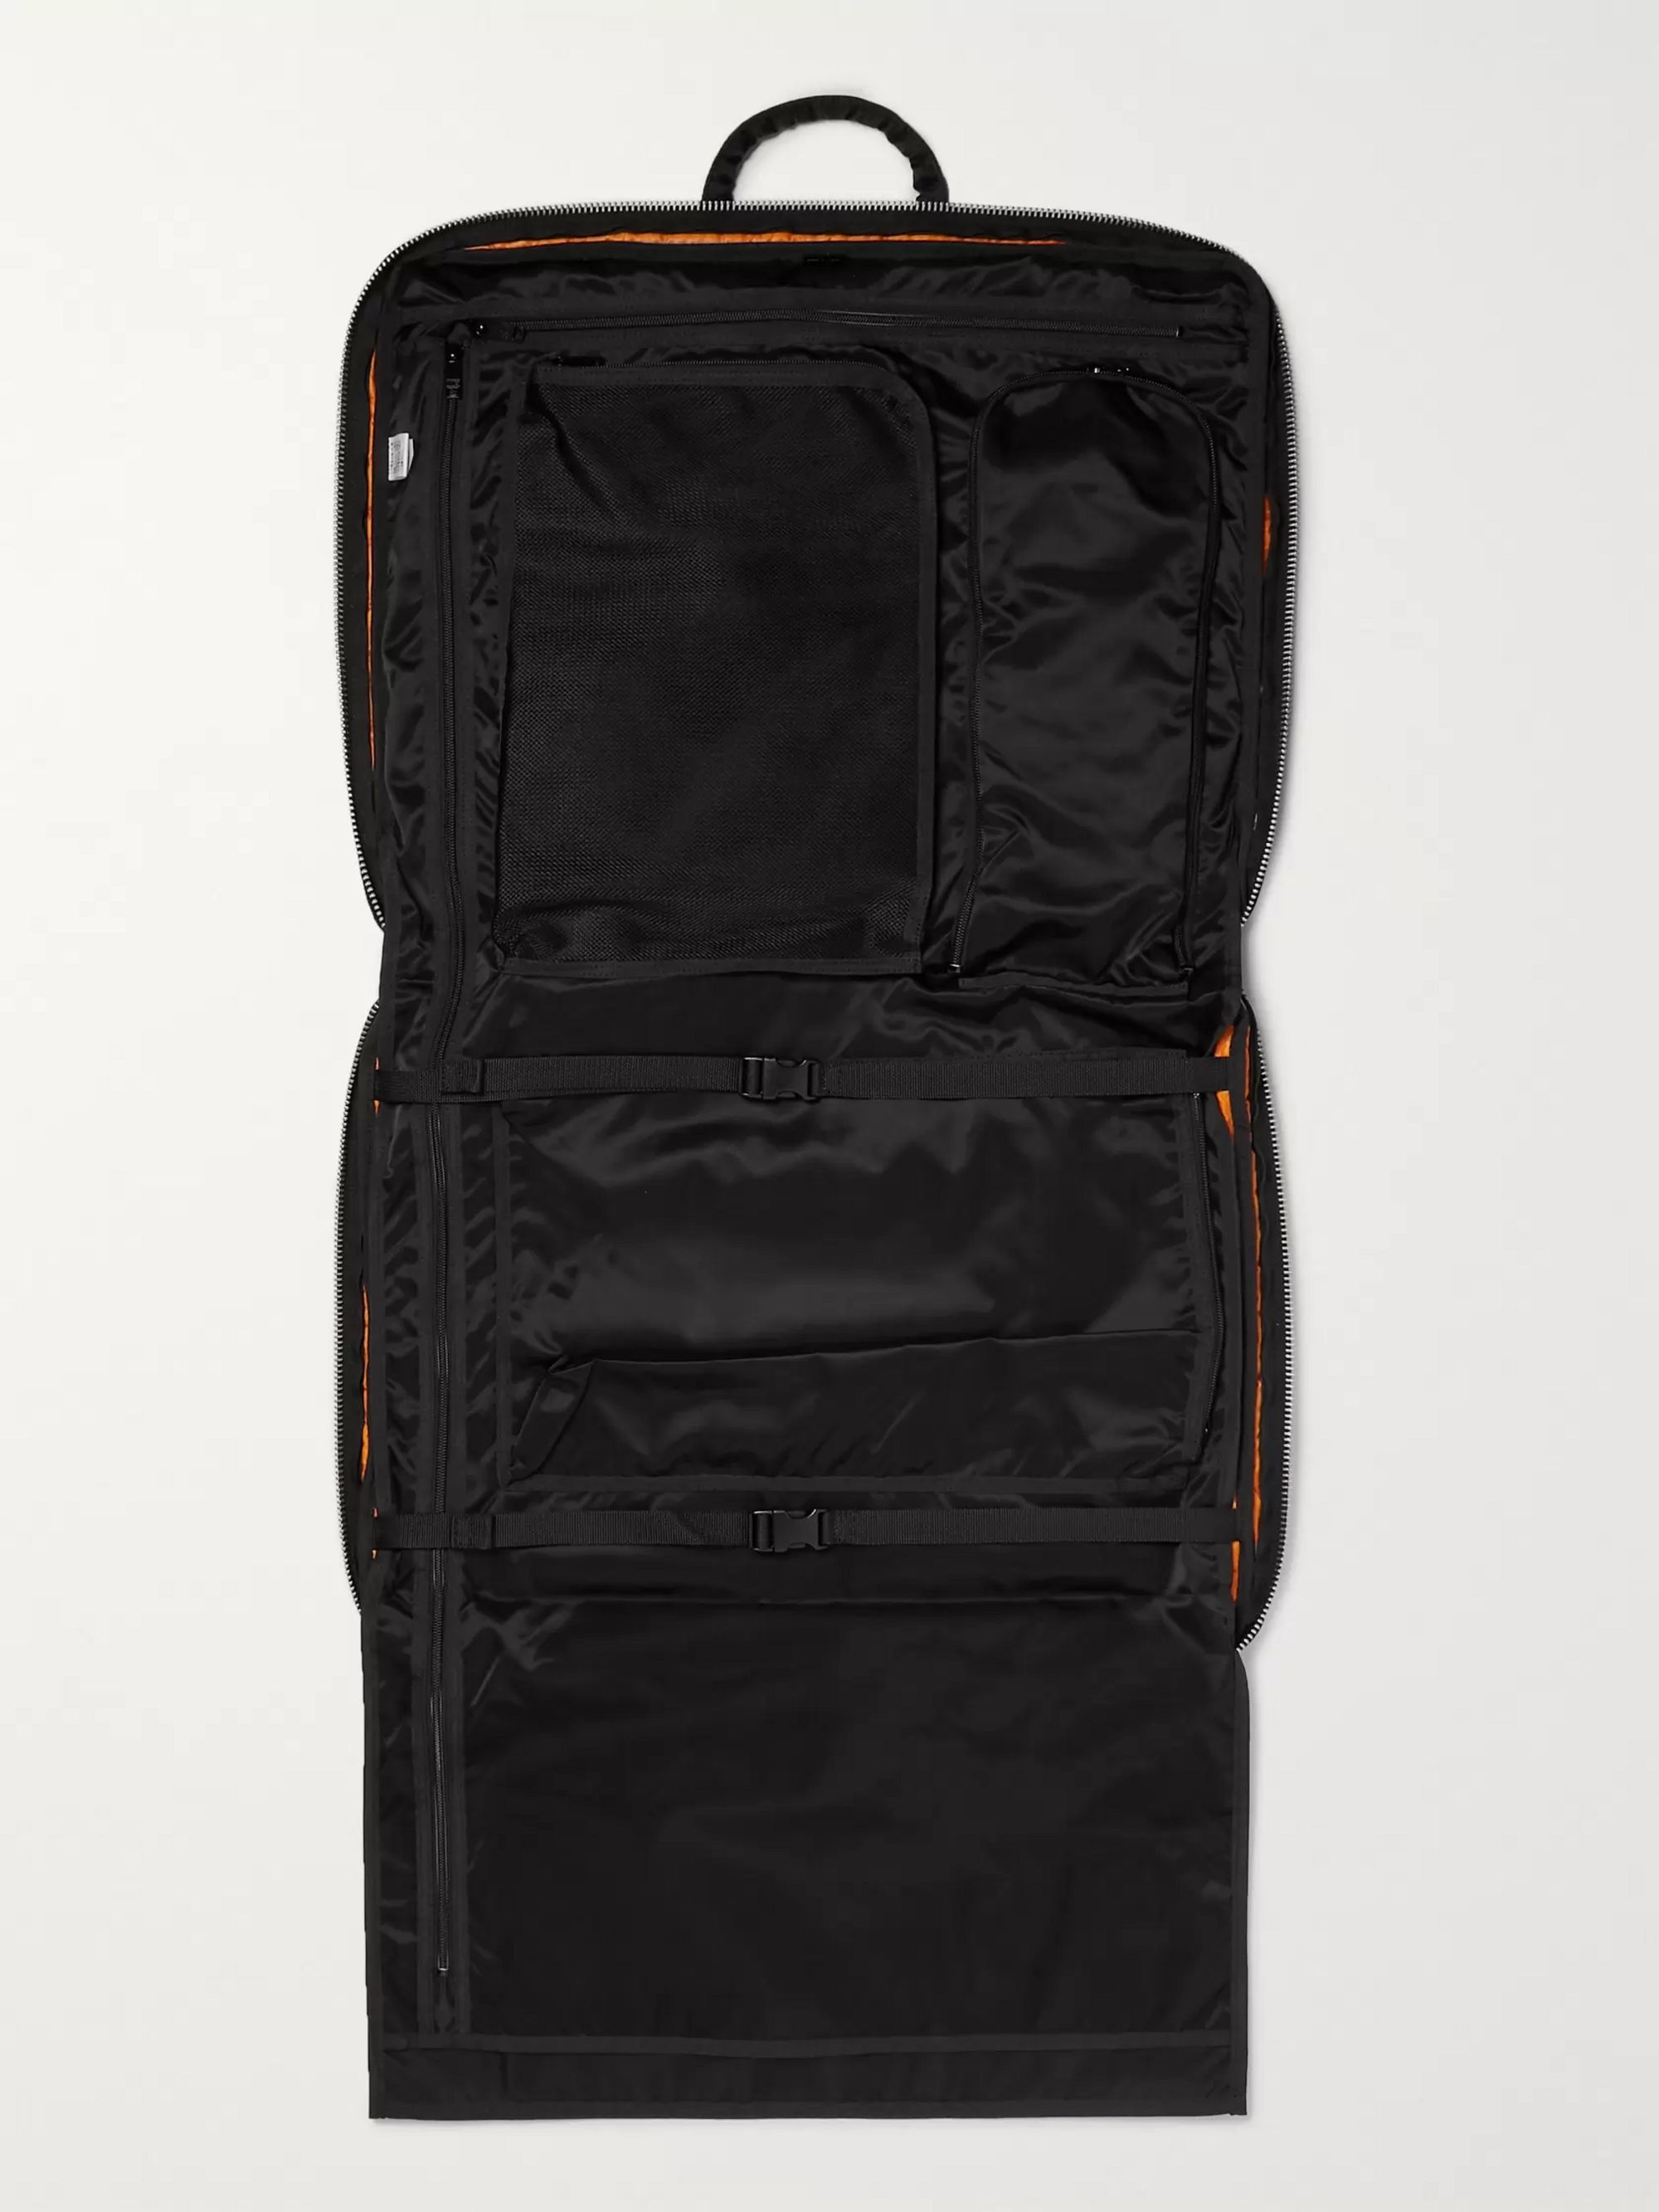 Porter-Yoshida & Co Tanker 2Way Nylon Garment Bag